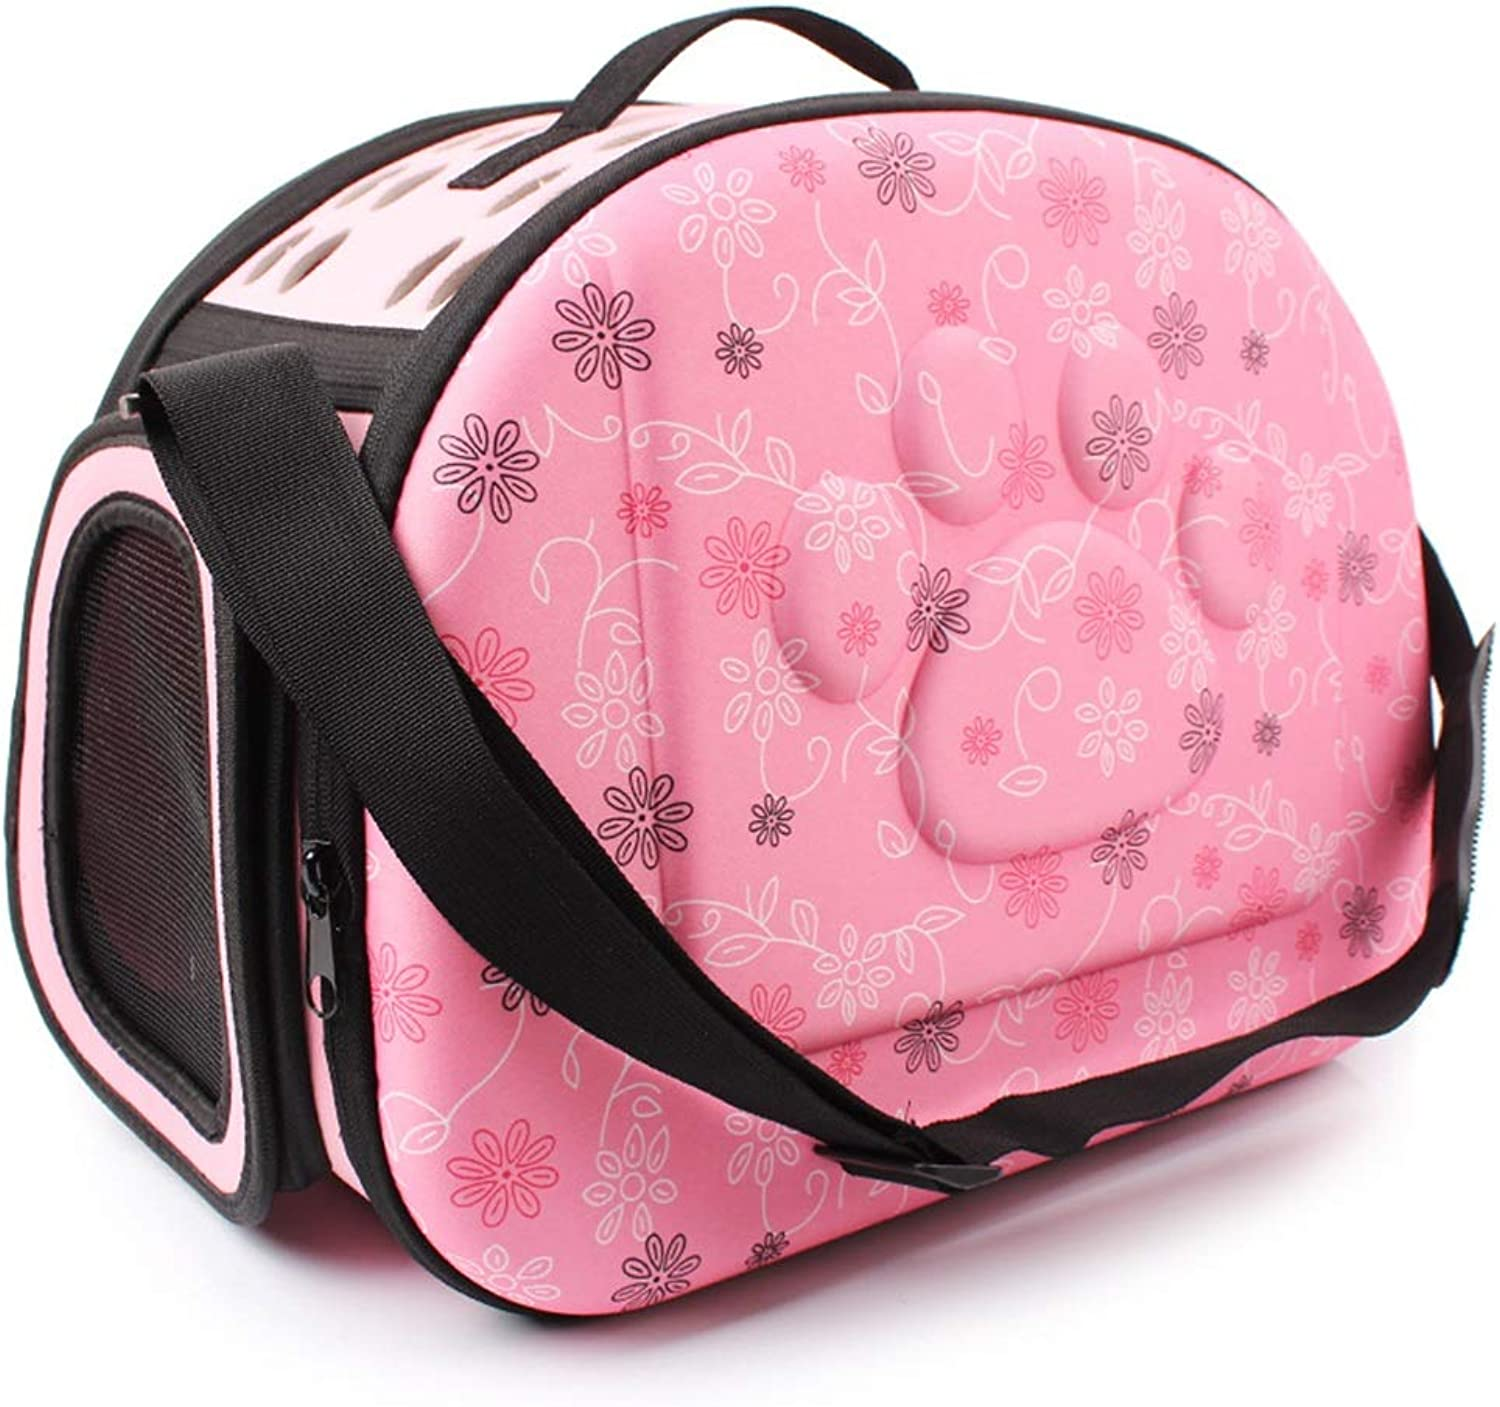 LXFLX Portable small dog bag EVA small pet out backpack Air pet dog kennel portable travel pet bag (color   Pink)